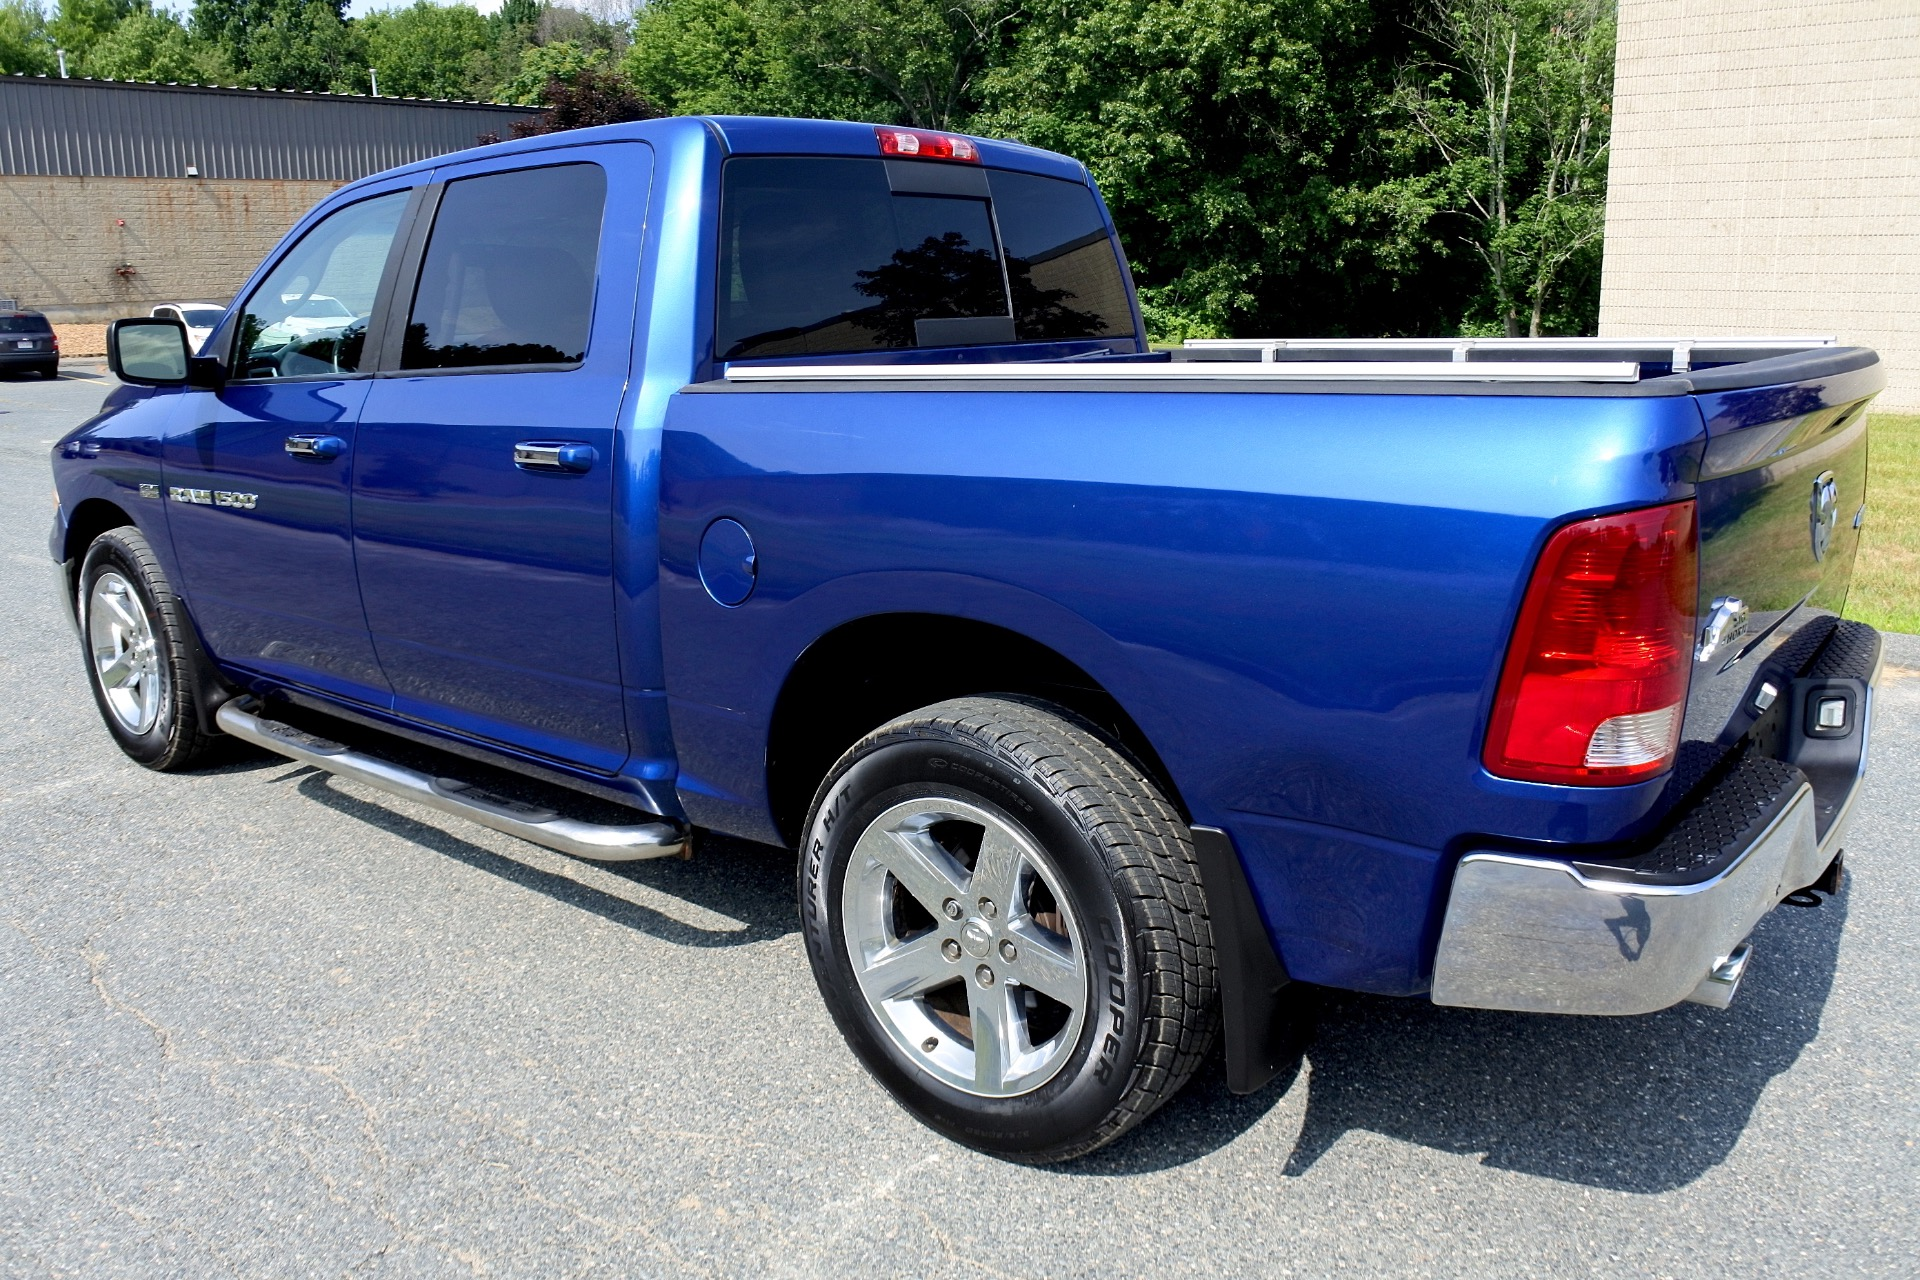 Used 2011 Ram 1500 4WD Crew Cab 140.5' Big Horn Used 2011 Ram 1500 4WD Crew Cab 140.5' Big Horn for sale  at Metro West Motorcars LLC in Shrewsbury MA 3